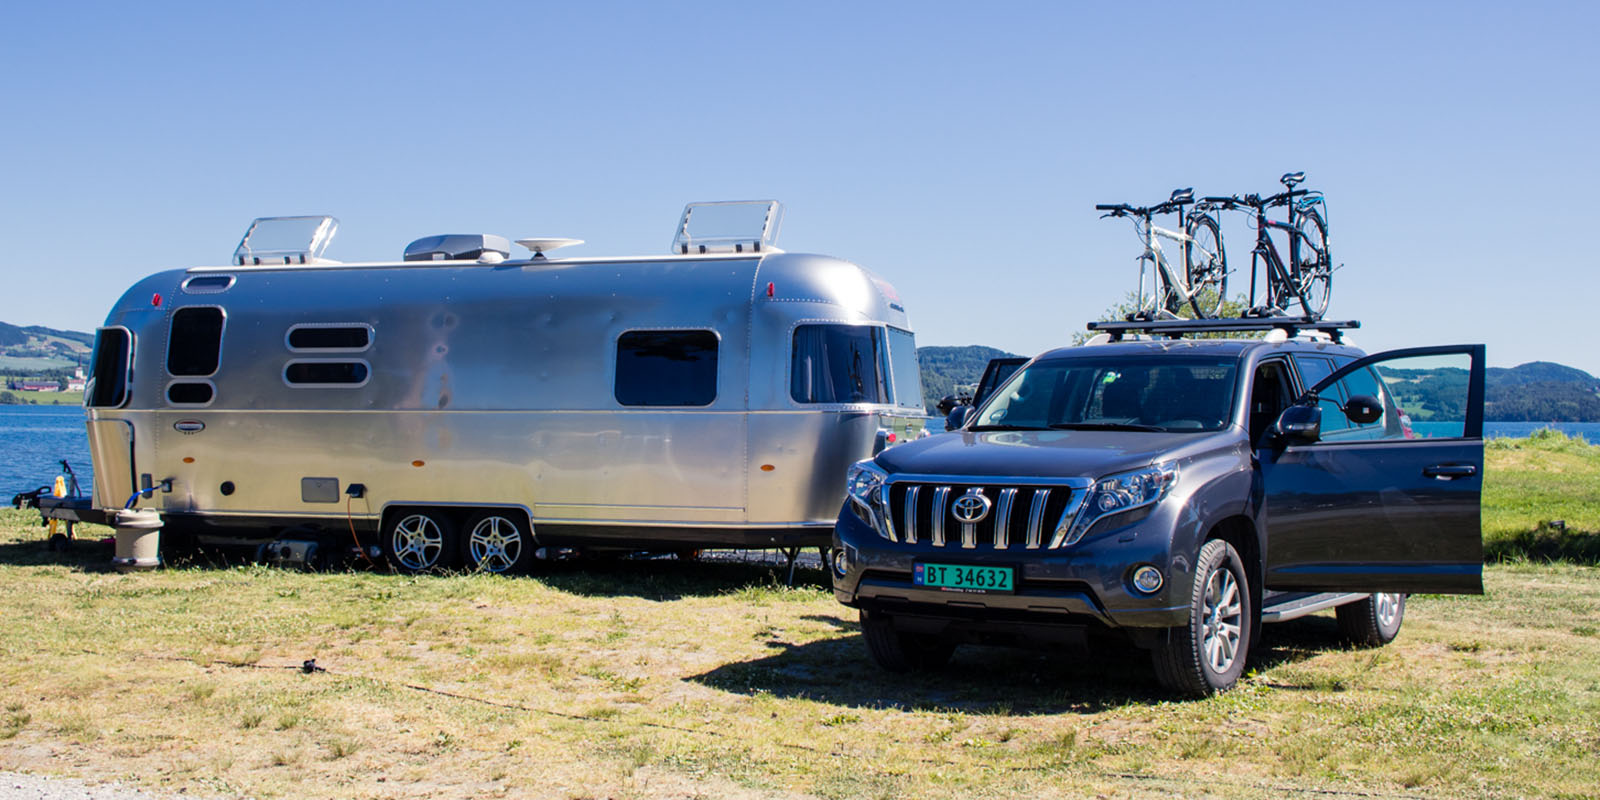 The Airstream Our mothership